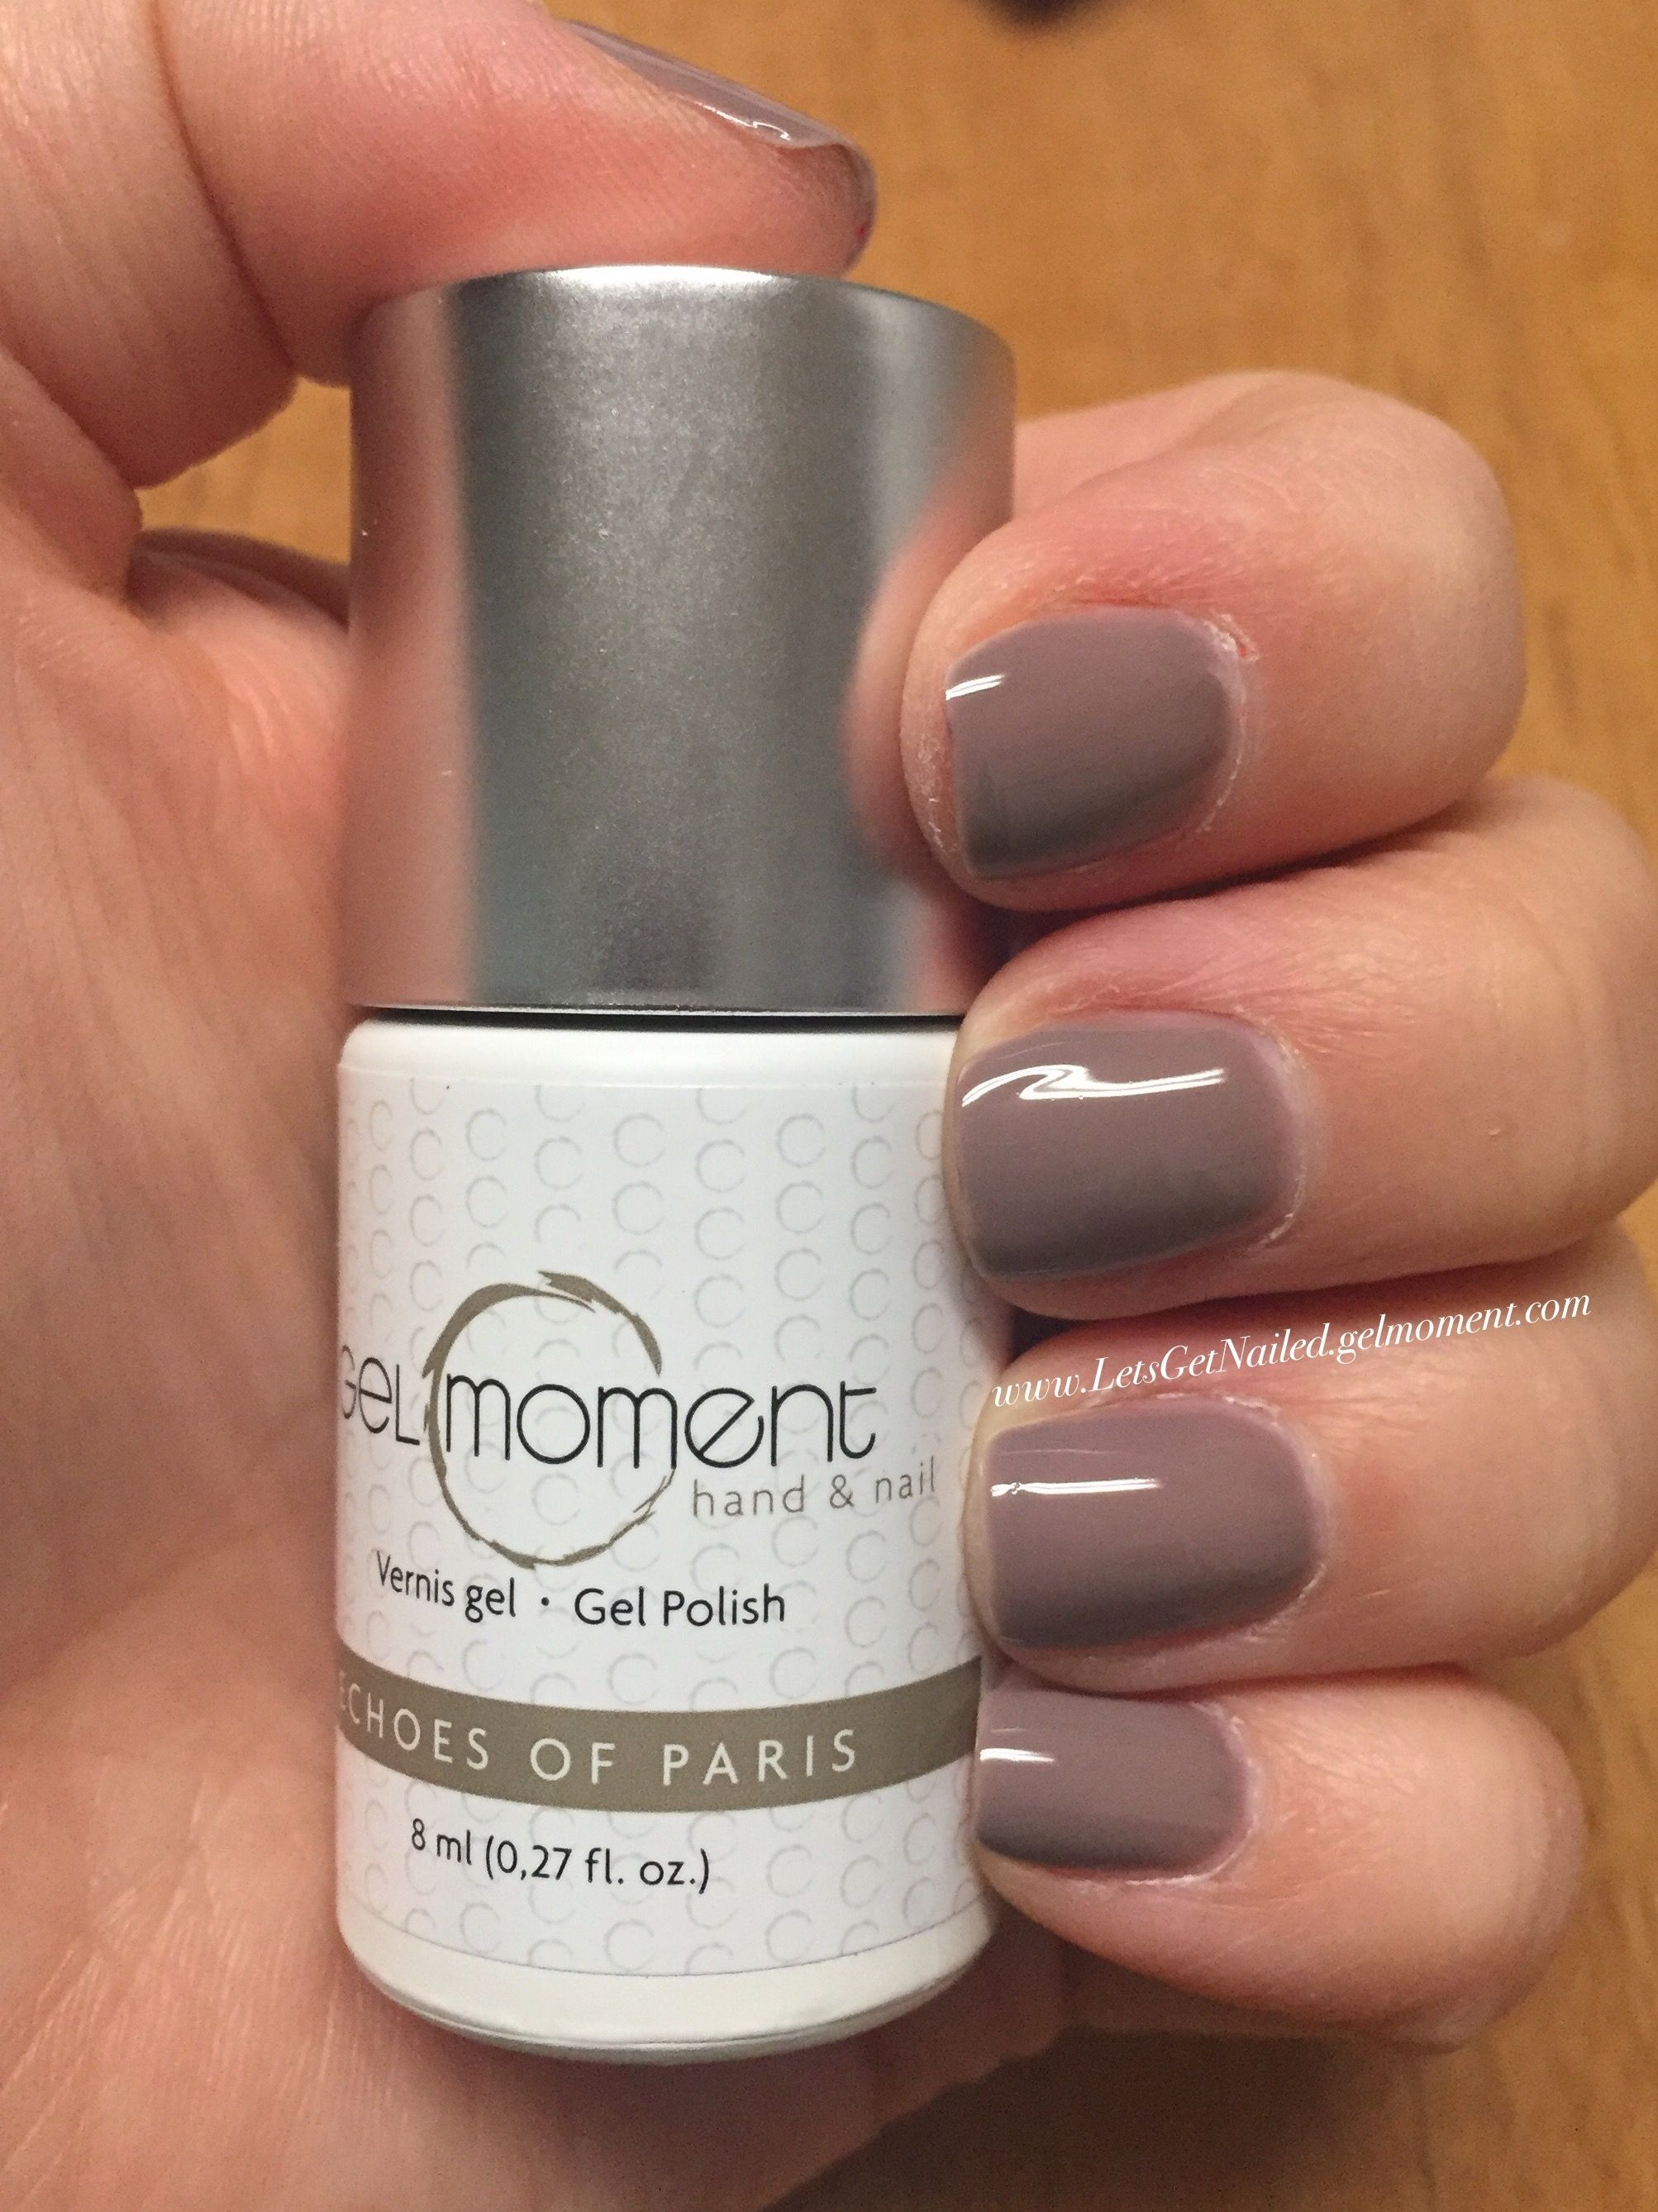 Pin by Dawn Schuessler-GelMoment Independent Distributor on ...